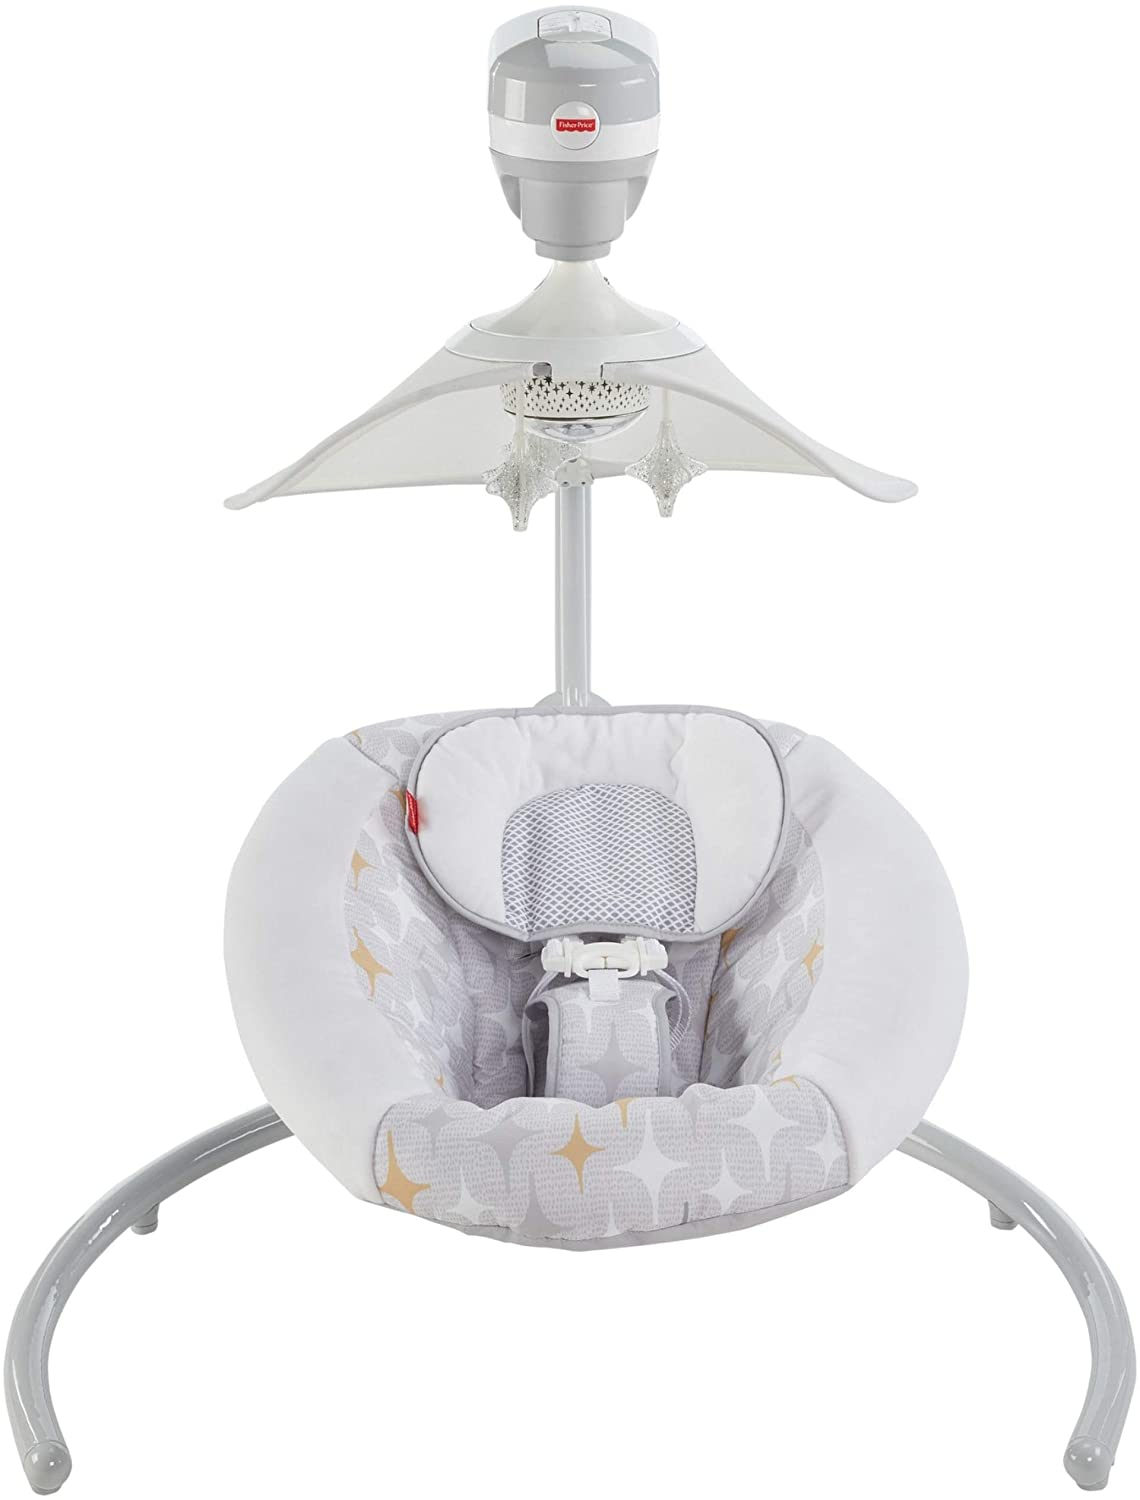 Fisher-Price Starlight Revolve Swing with Smart Connect FFH99